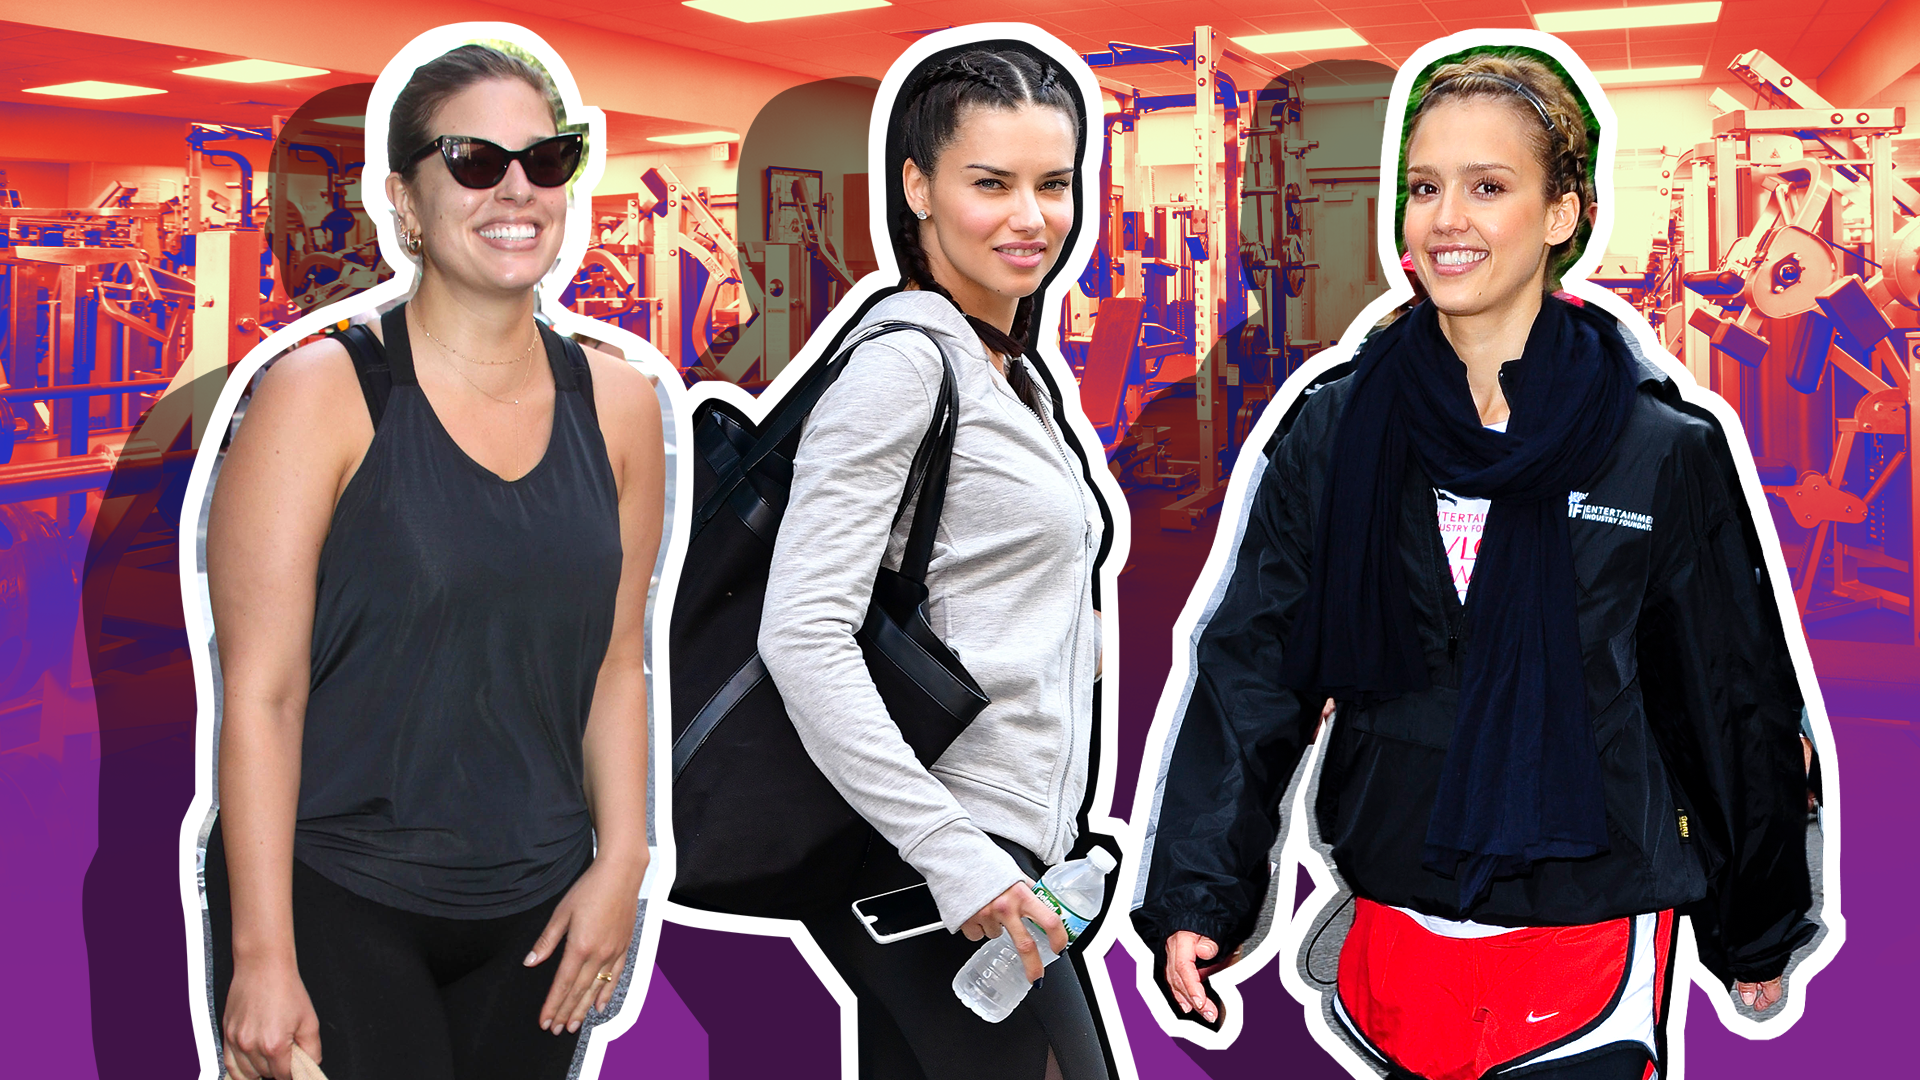 13 Makeup-Free Celebrity Gym Selfies to Jumpstart Your Day